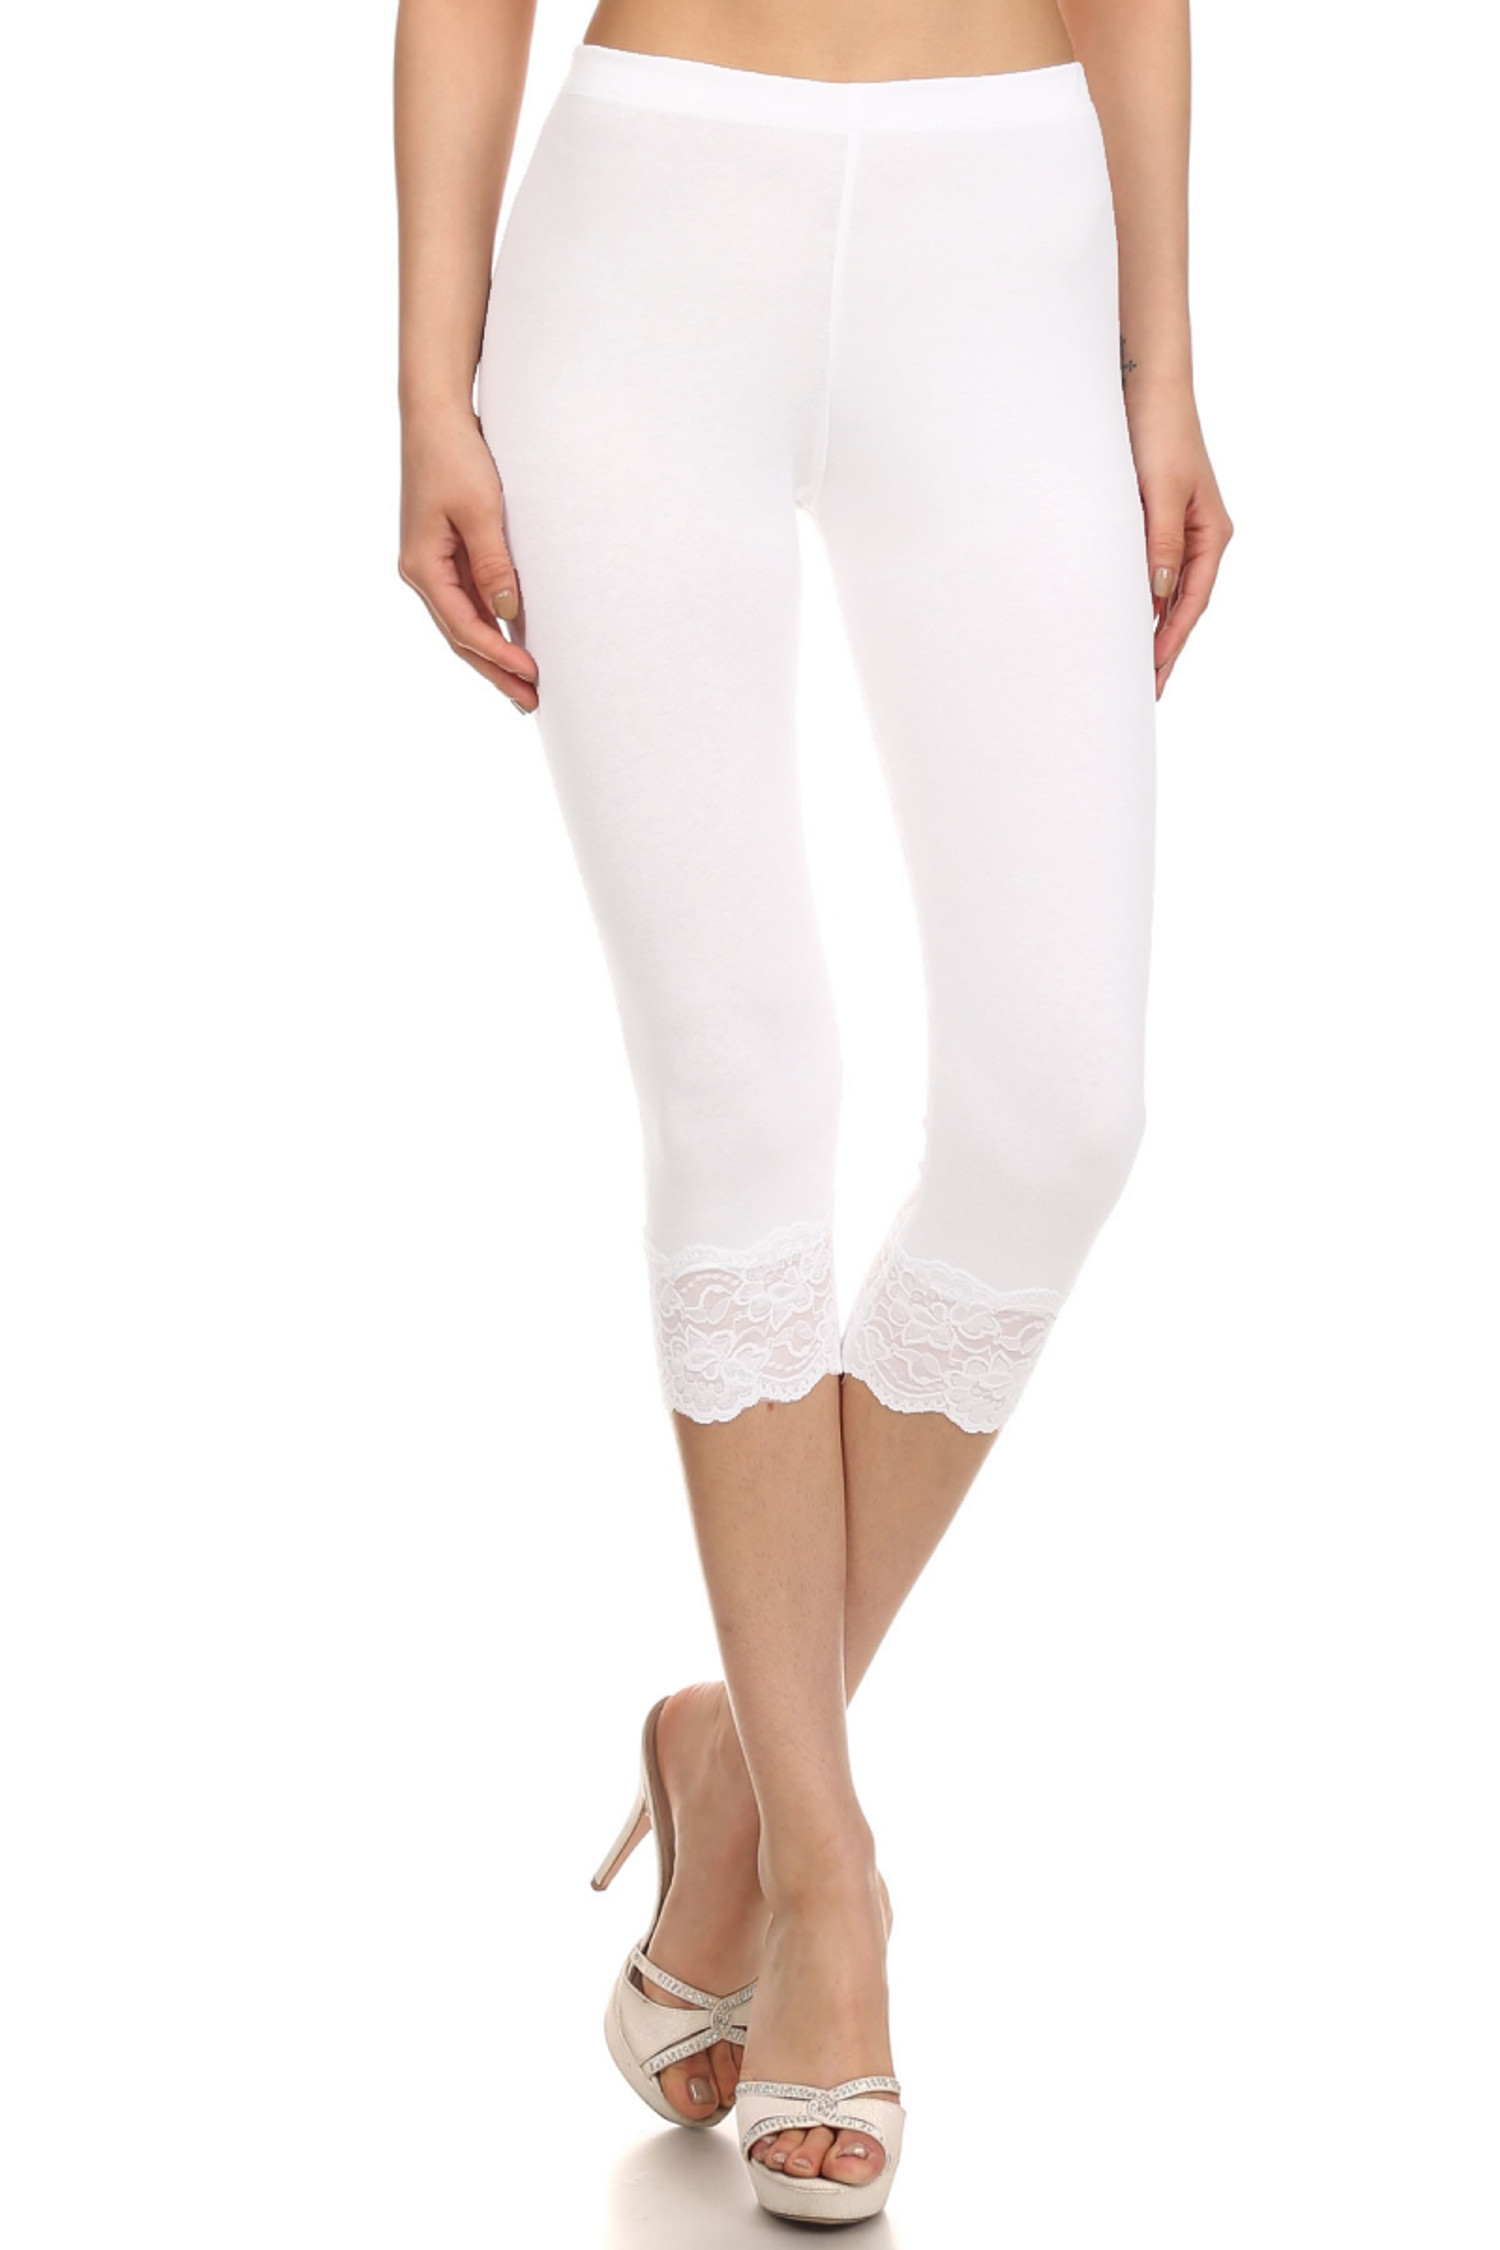 White USA Cotton Capri Lace Leggings